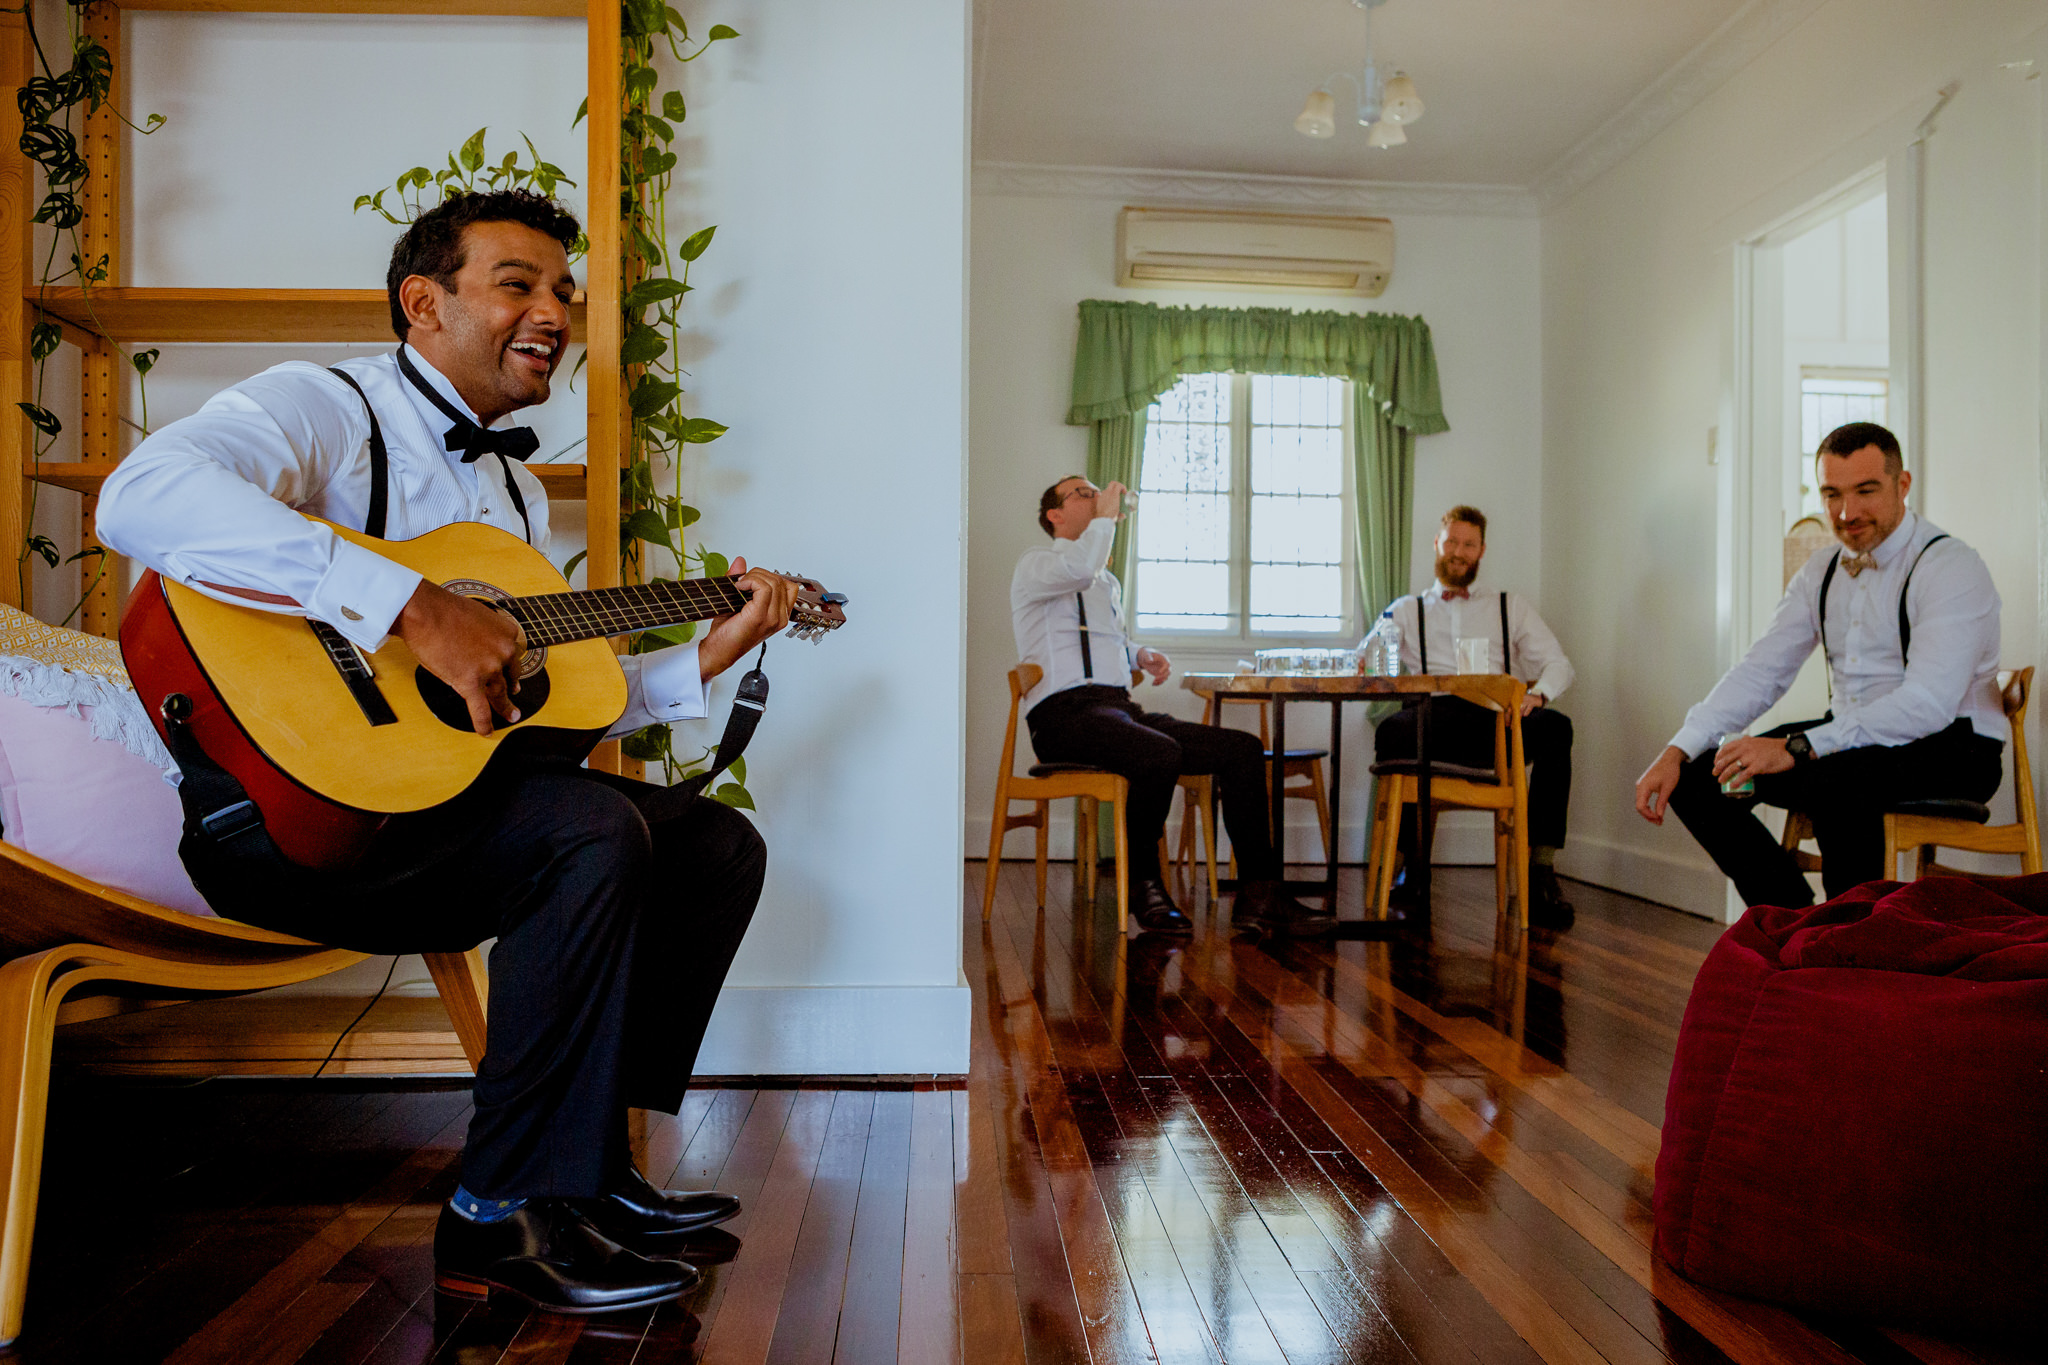 Men in suits laugh as they sit together in a room while one plays guitar